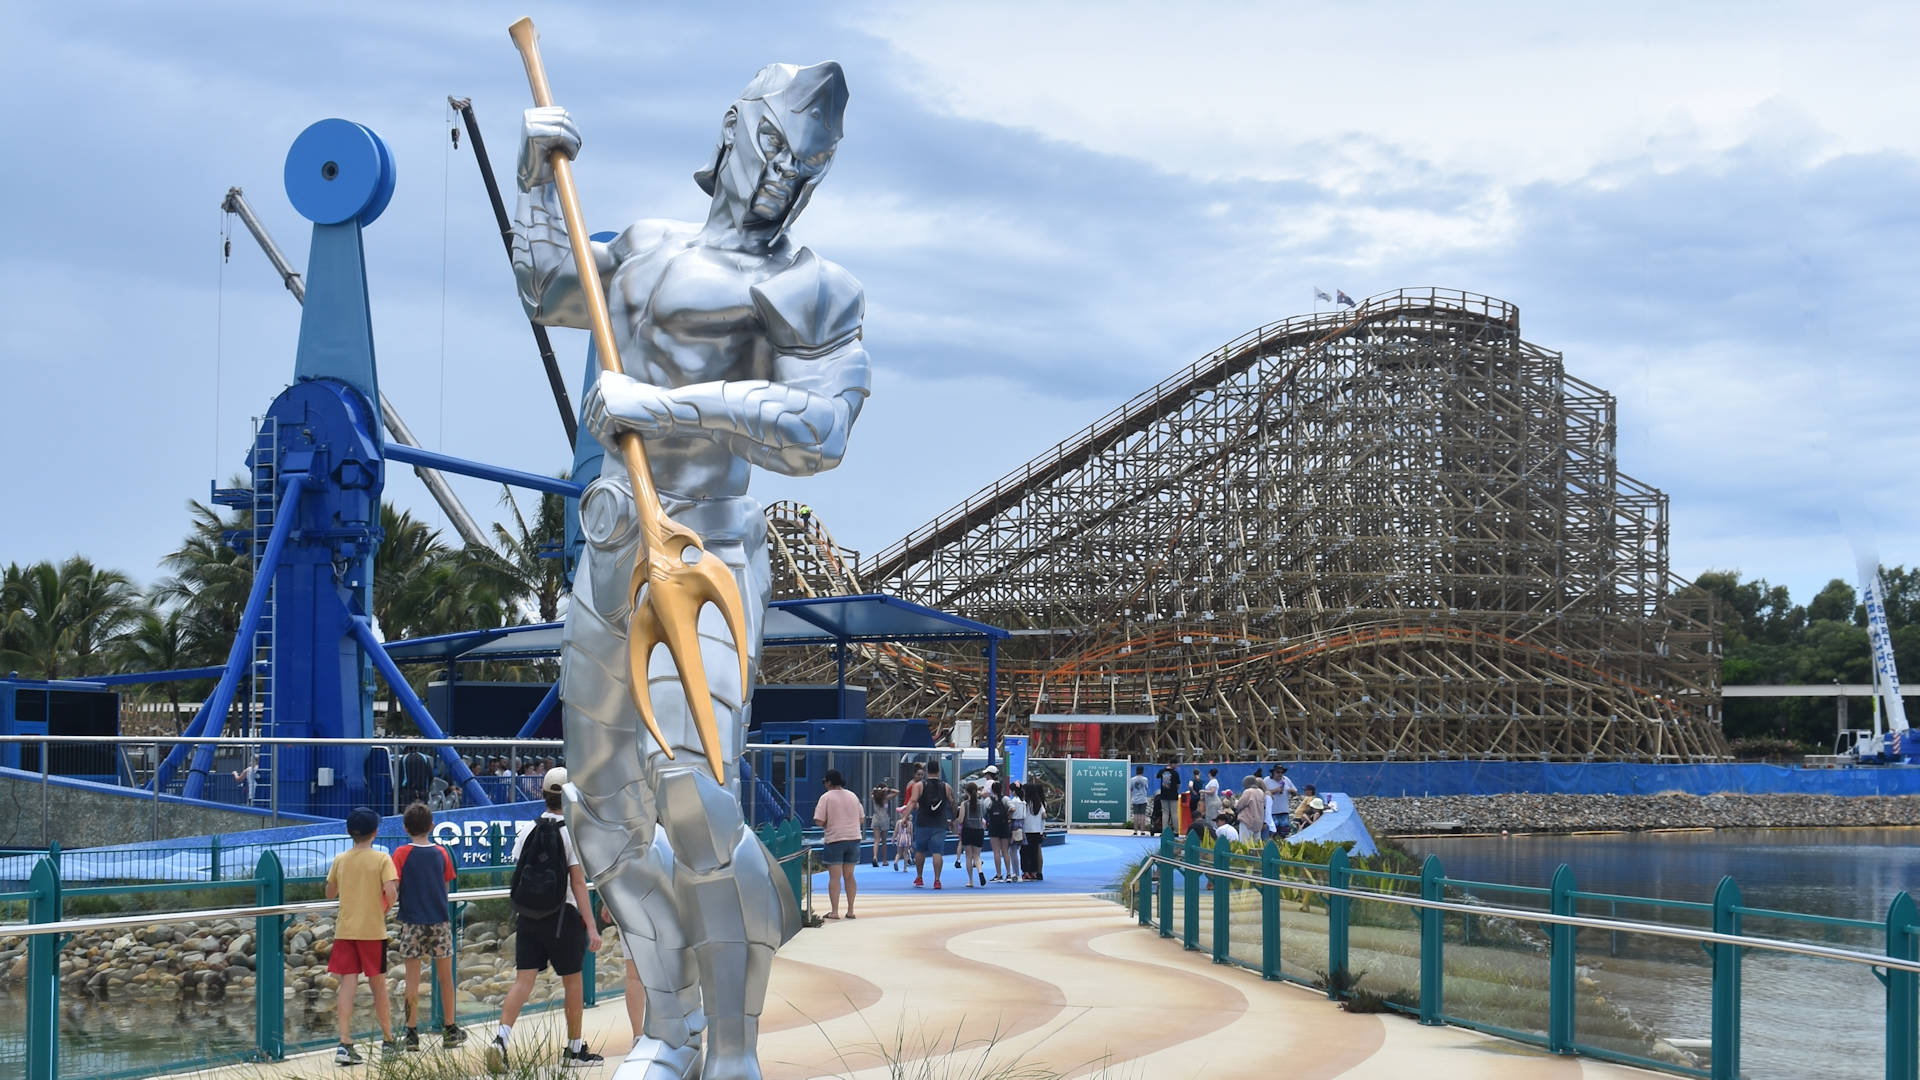 Trident holding silver figure, wooden roller coaster in the background on the right, amusement park ride in the background on the left